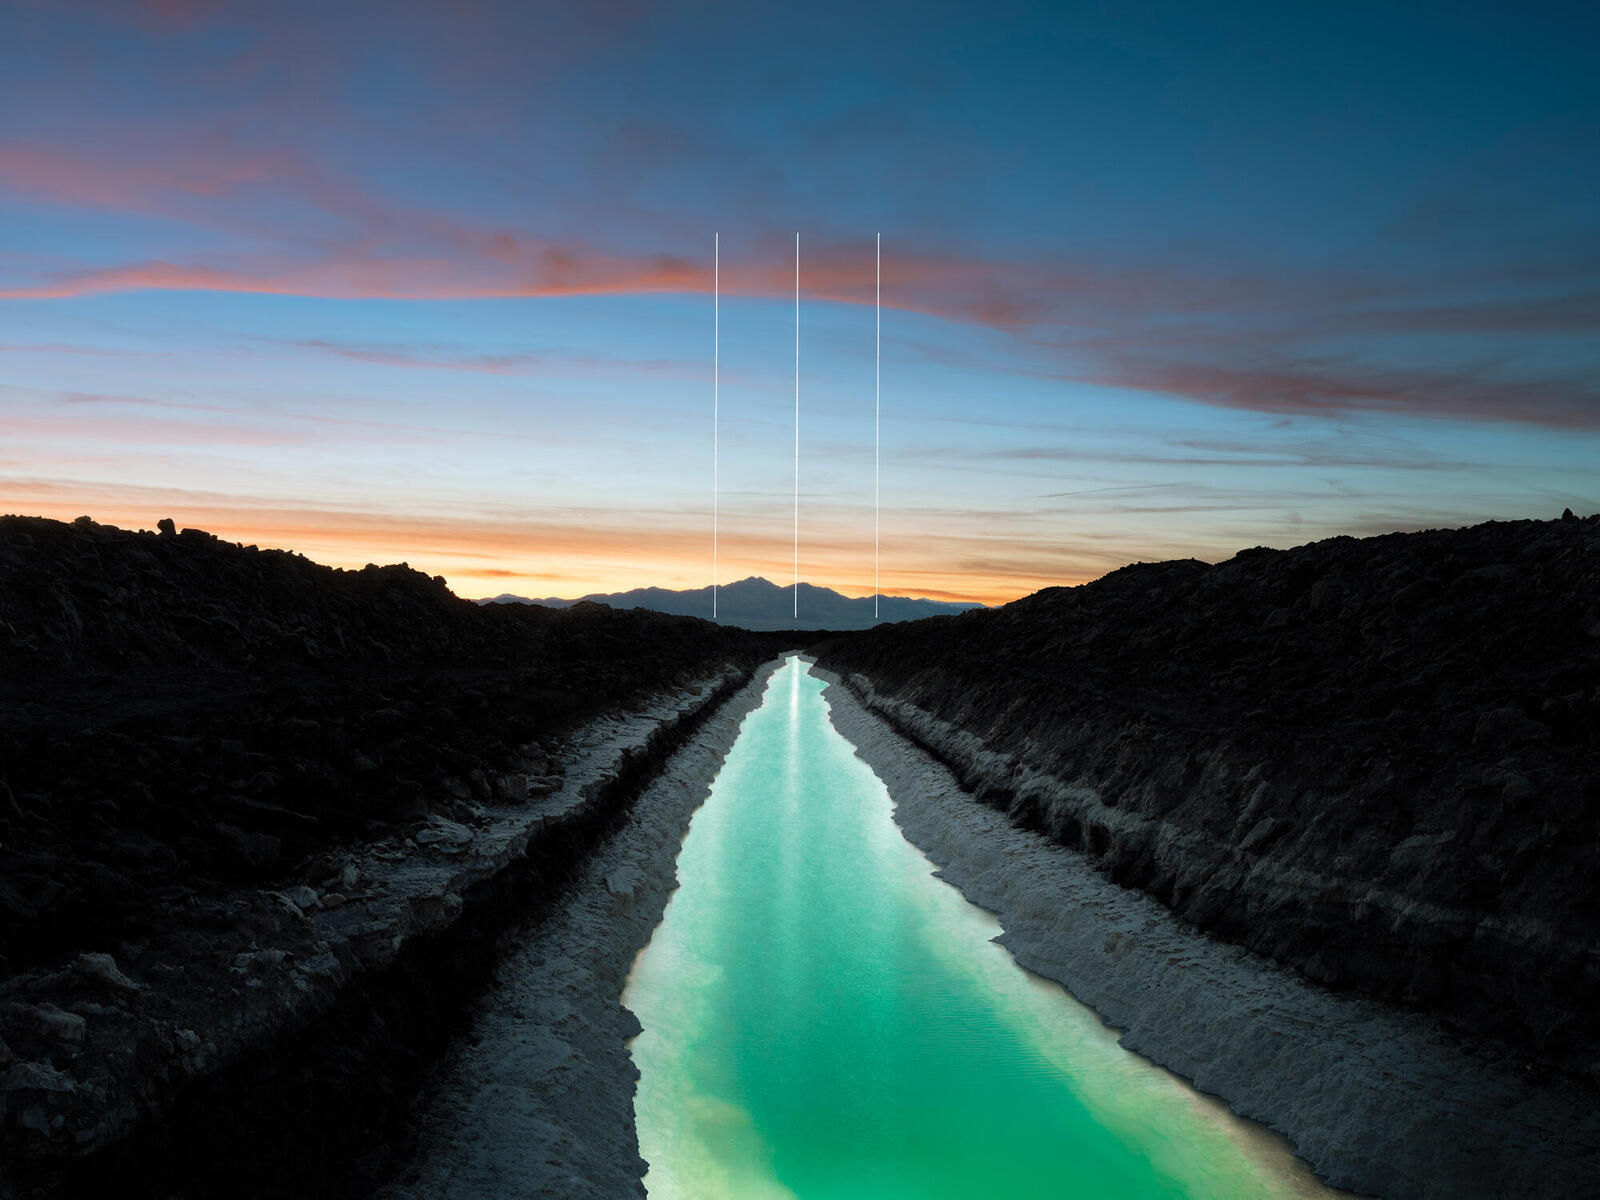 Sunset landscape of canal with 3 vertical lines